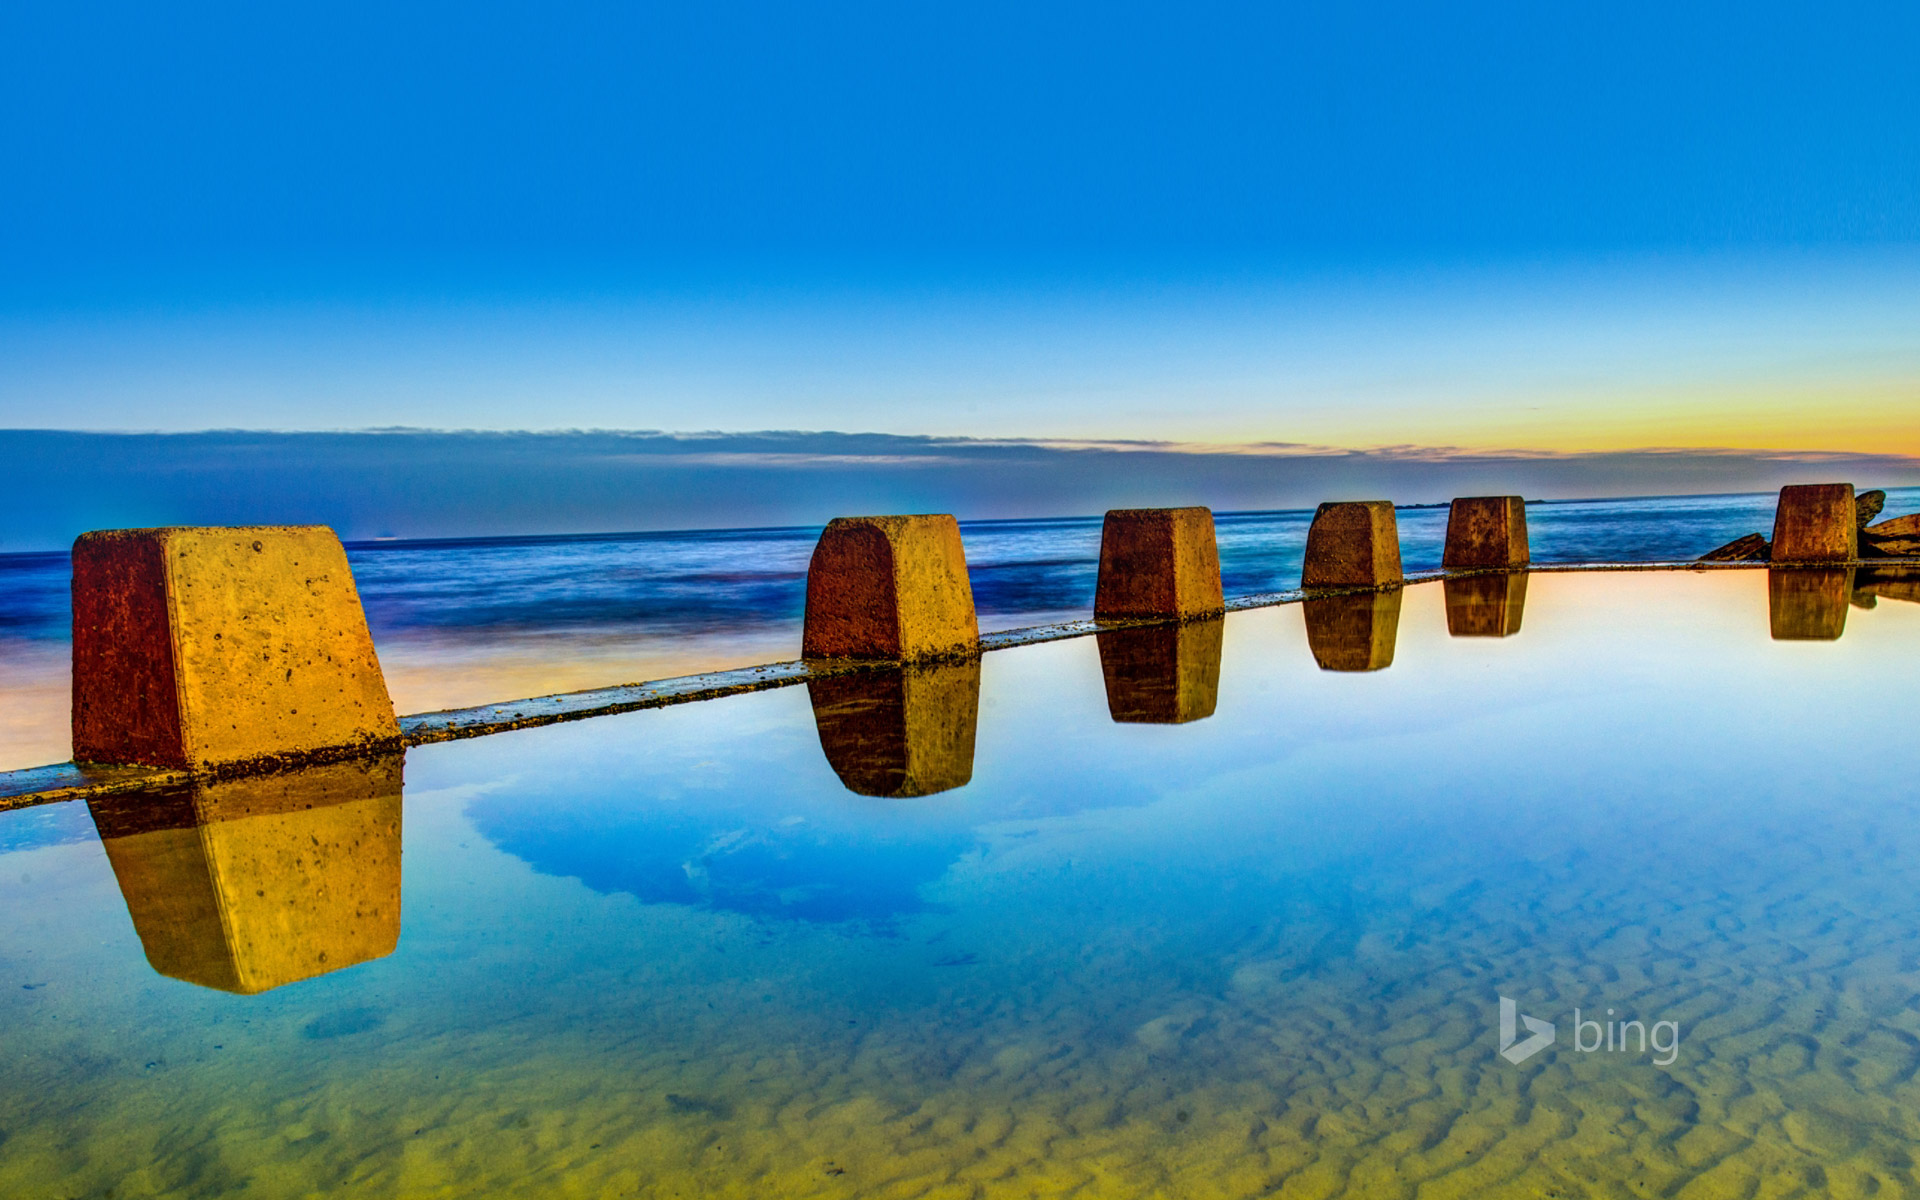 Pool at sunrise in Coogee, outside Sydney, New South Wales, Australia